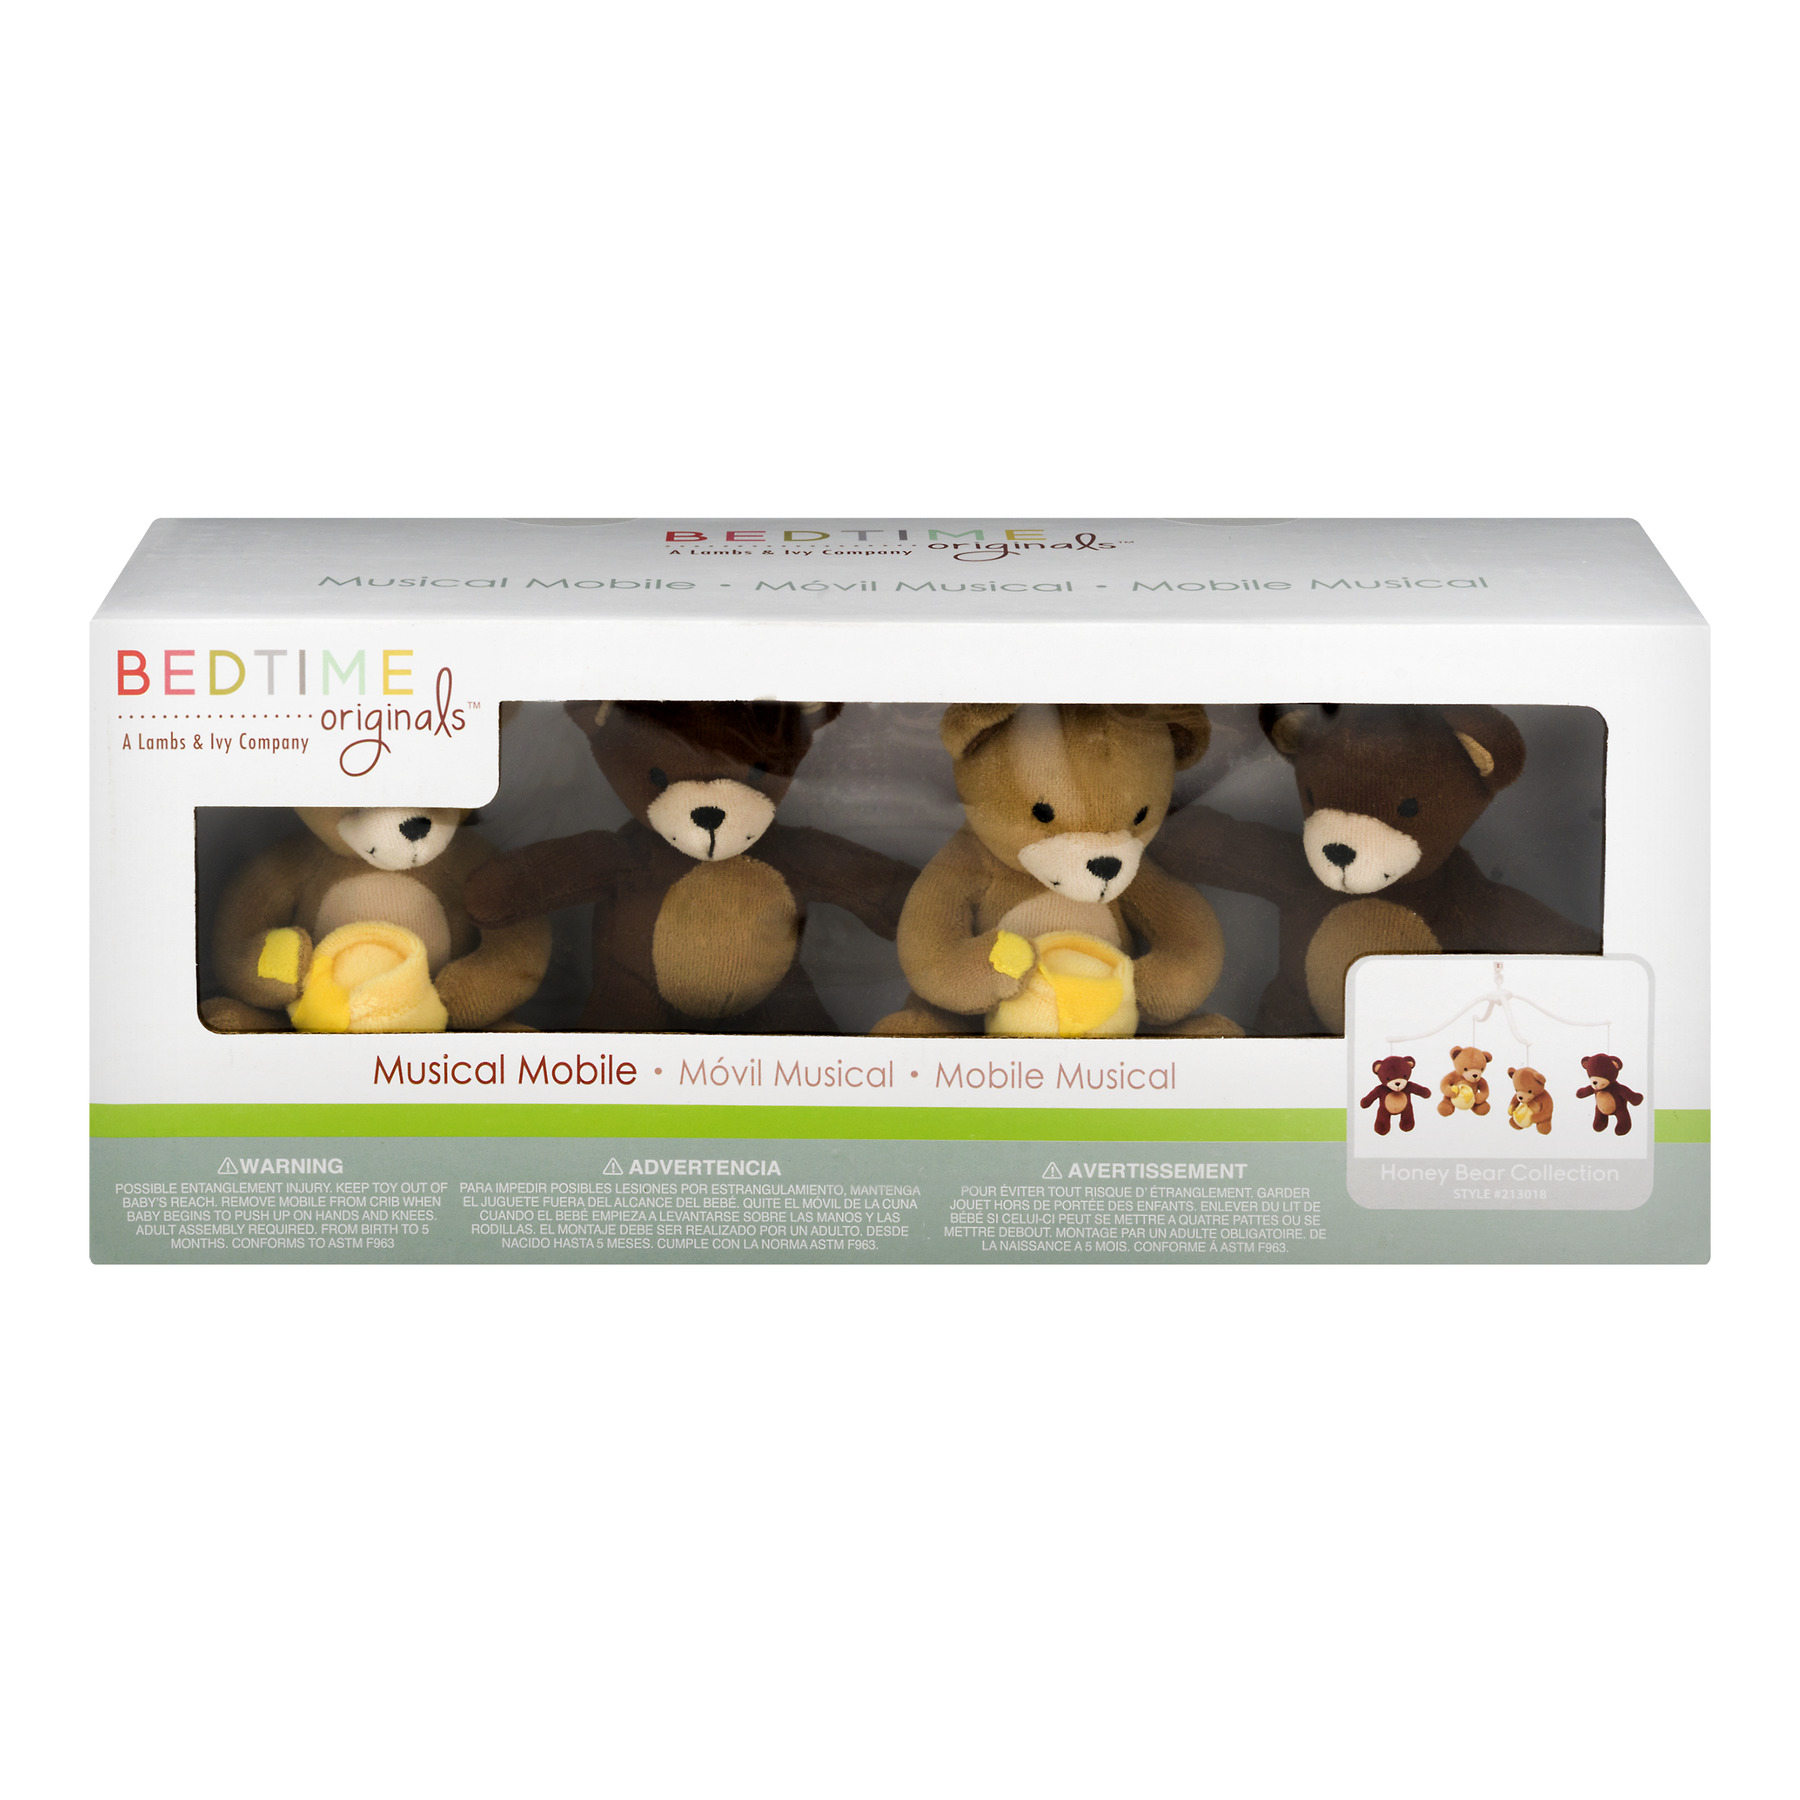 Bedtime Originals Lamps Musical Mobile ,Honey Bear Collection, 1.0 CT